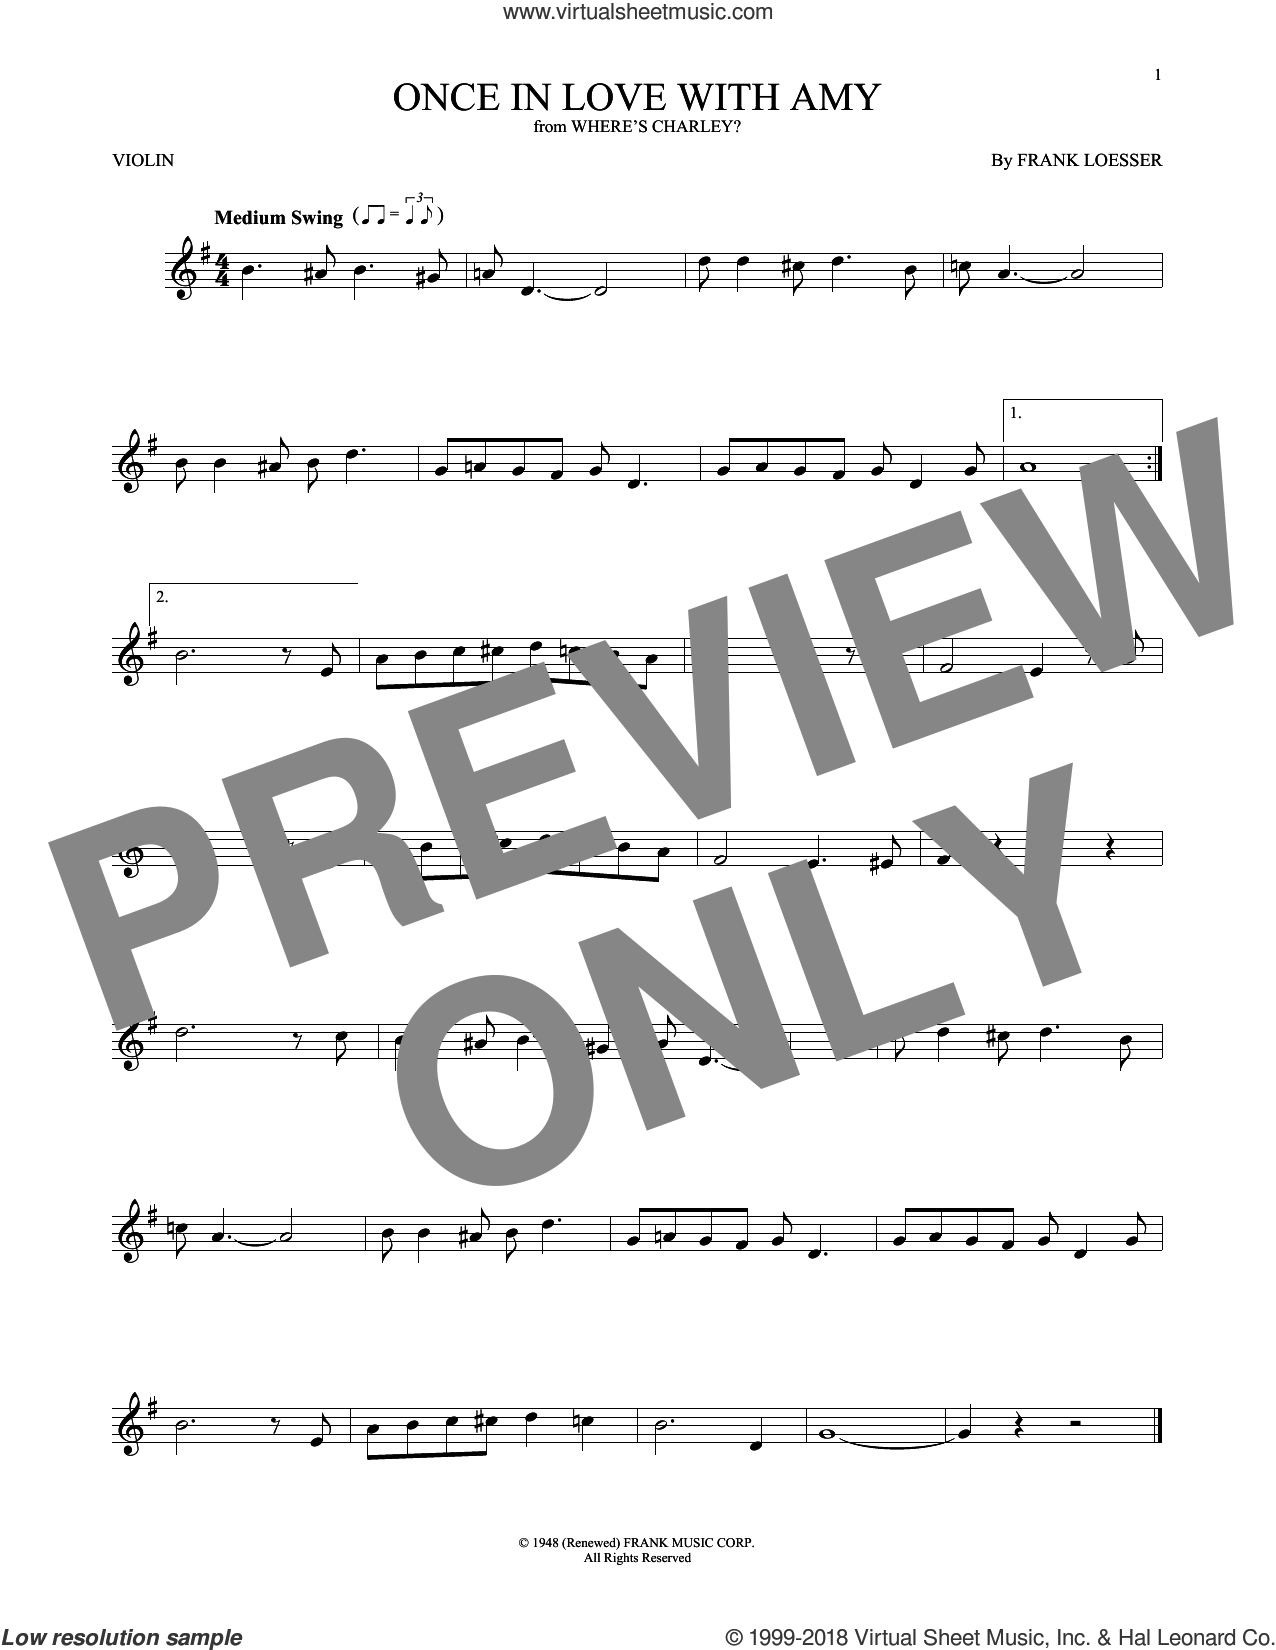 Once In Love With Amy sheet music for violin solo by Frank Loesser, intermediate skill level